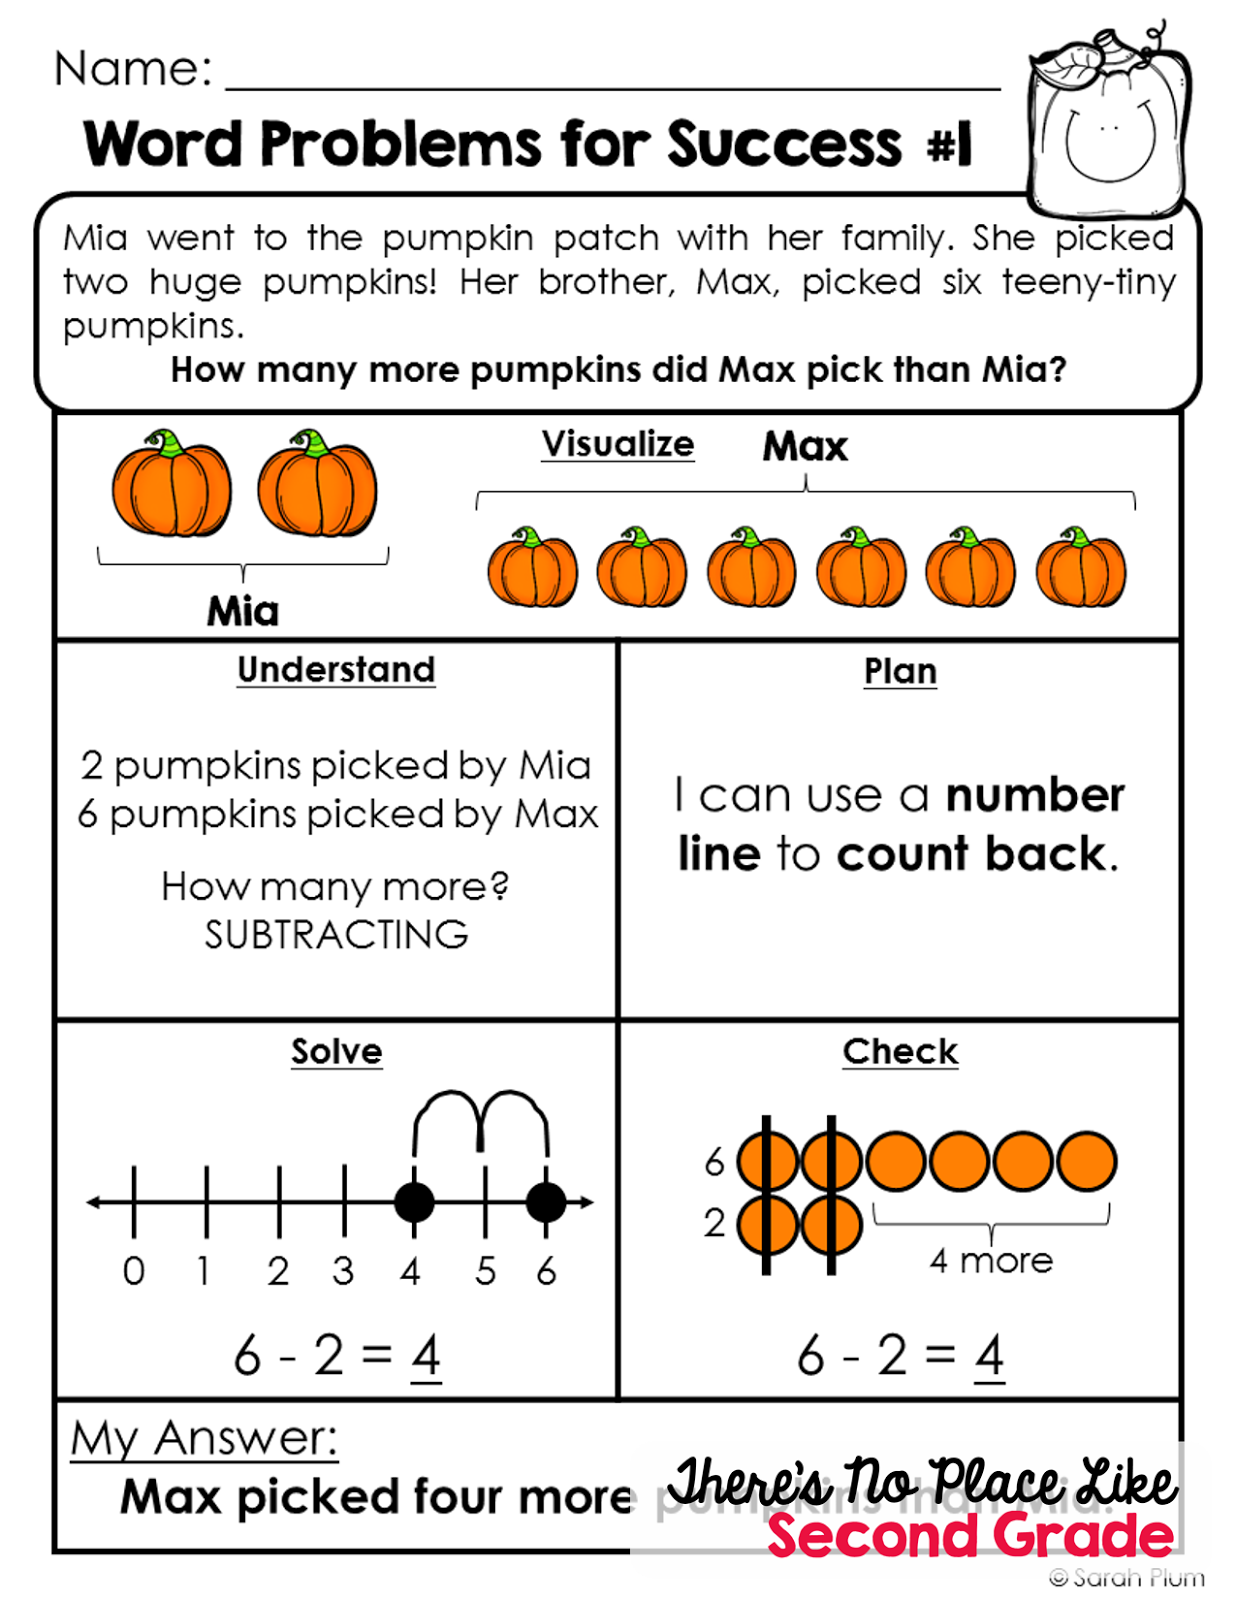 Worksheet 2 Step Story Problems getting festive for fall with virginia bloggers id love you to check out and enjoy one of these mini lessons let me know what think thanks stopping by a r